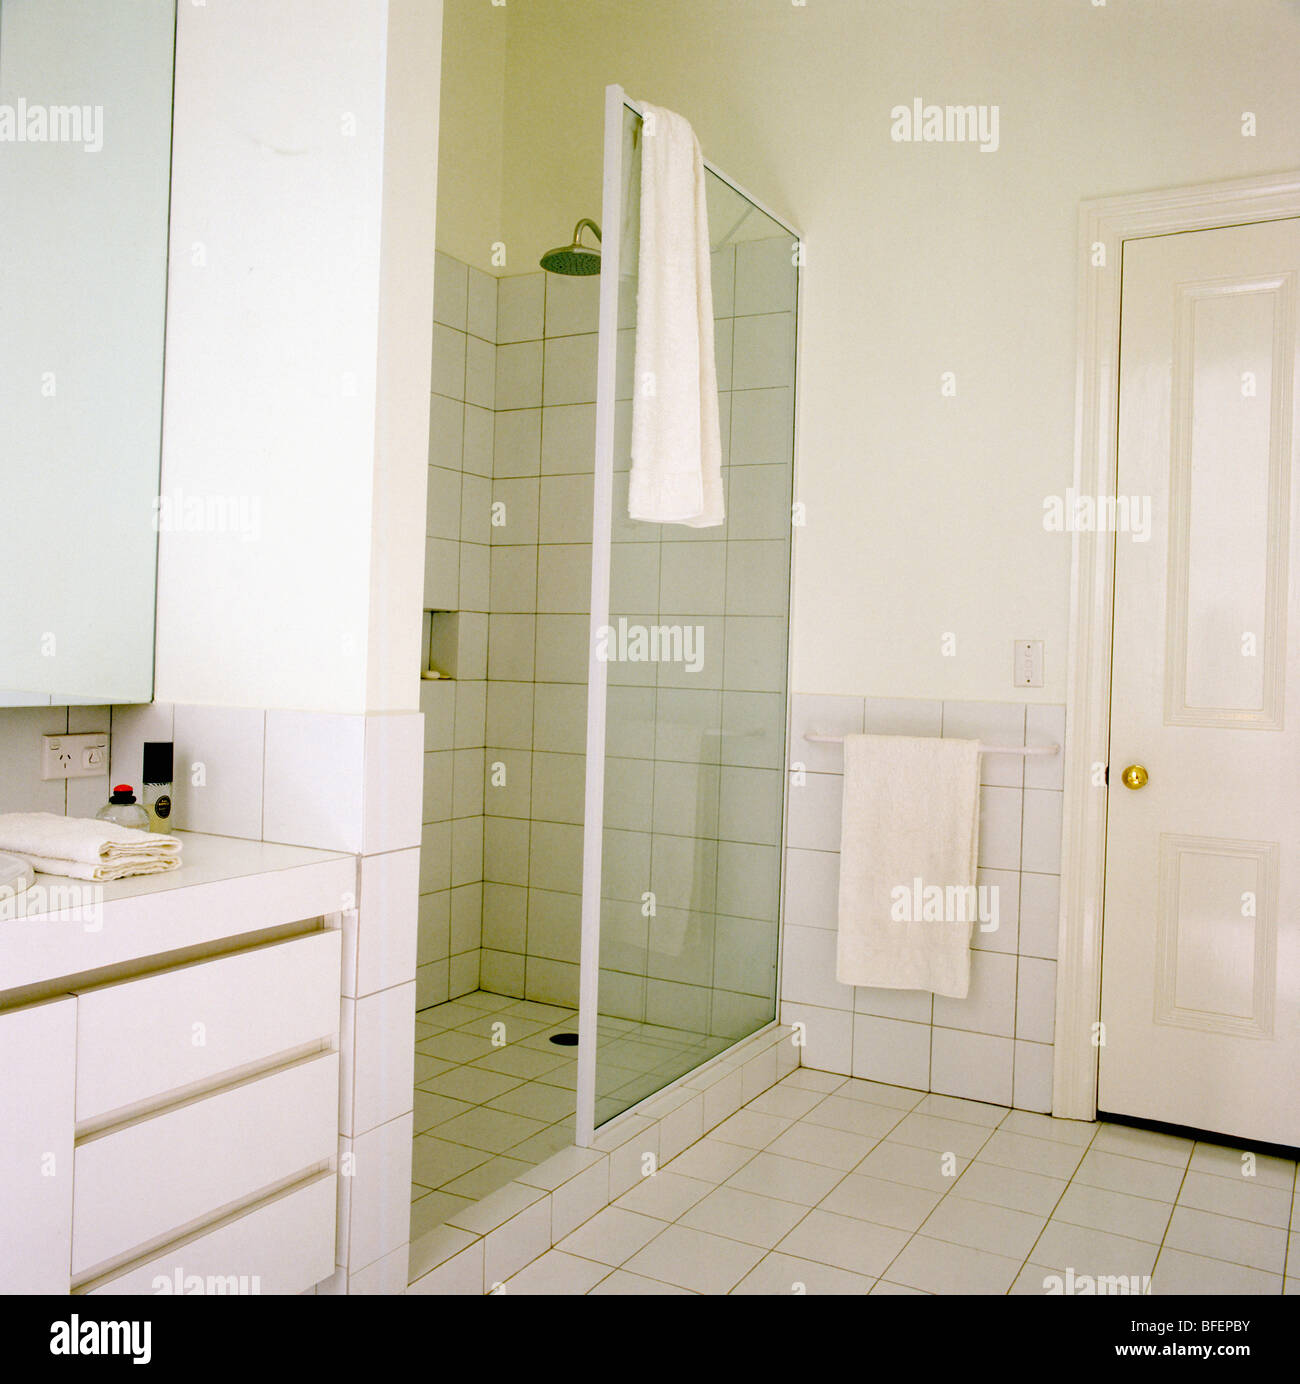 Walk-in shower with glass doors in modern white bathroom Stock Photo ...